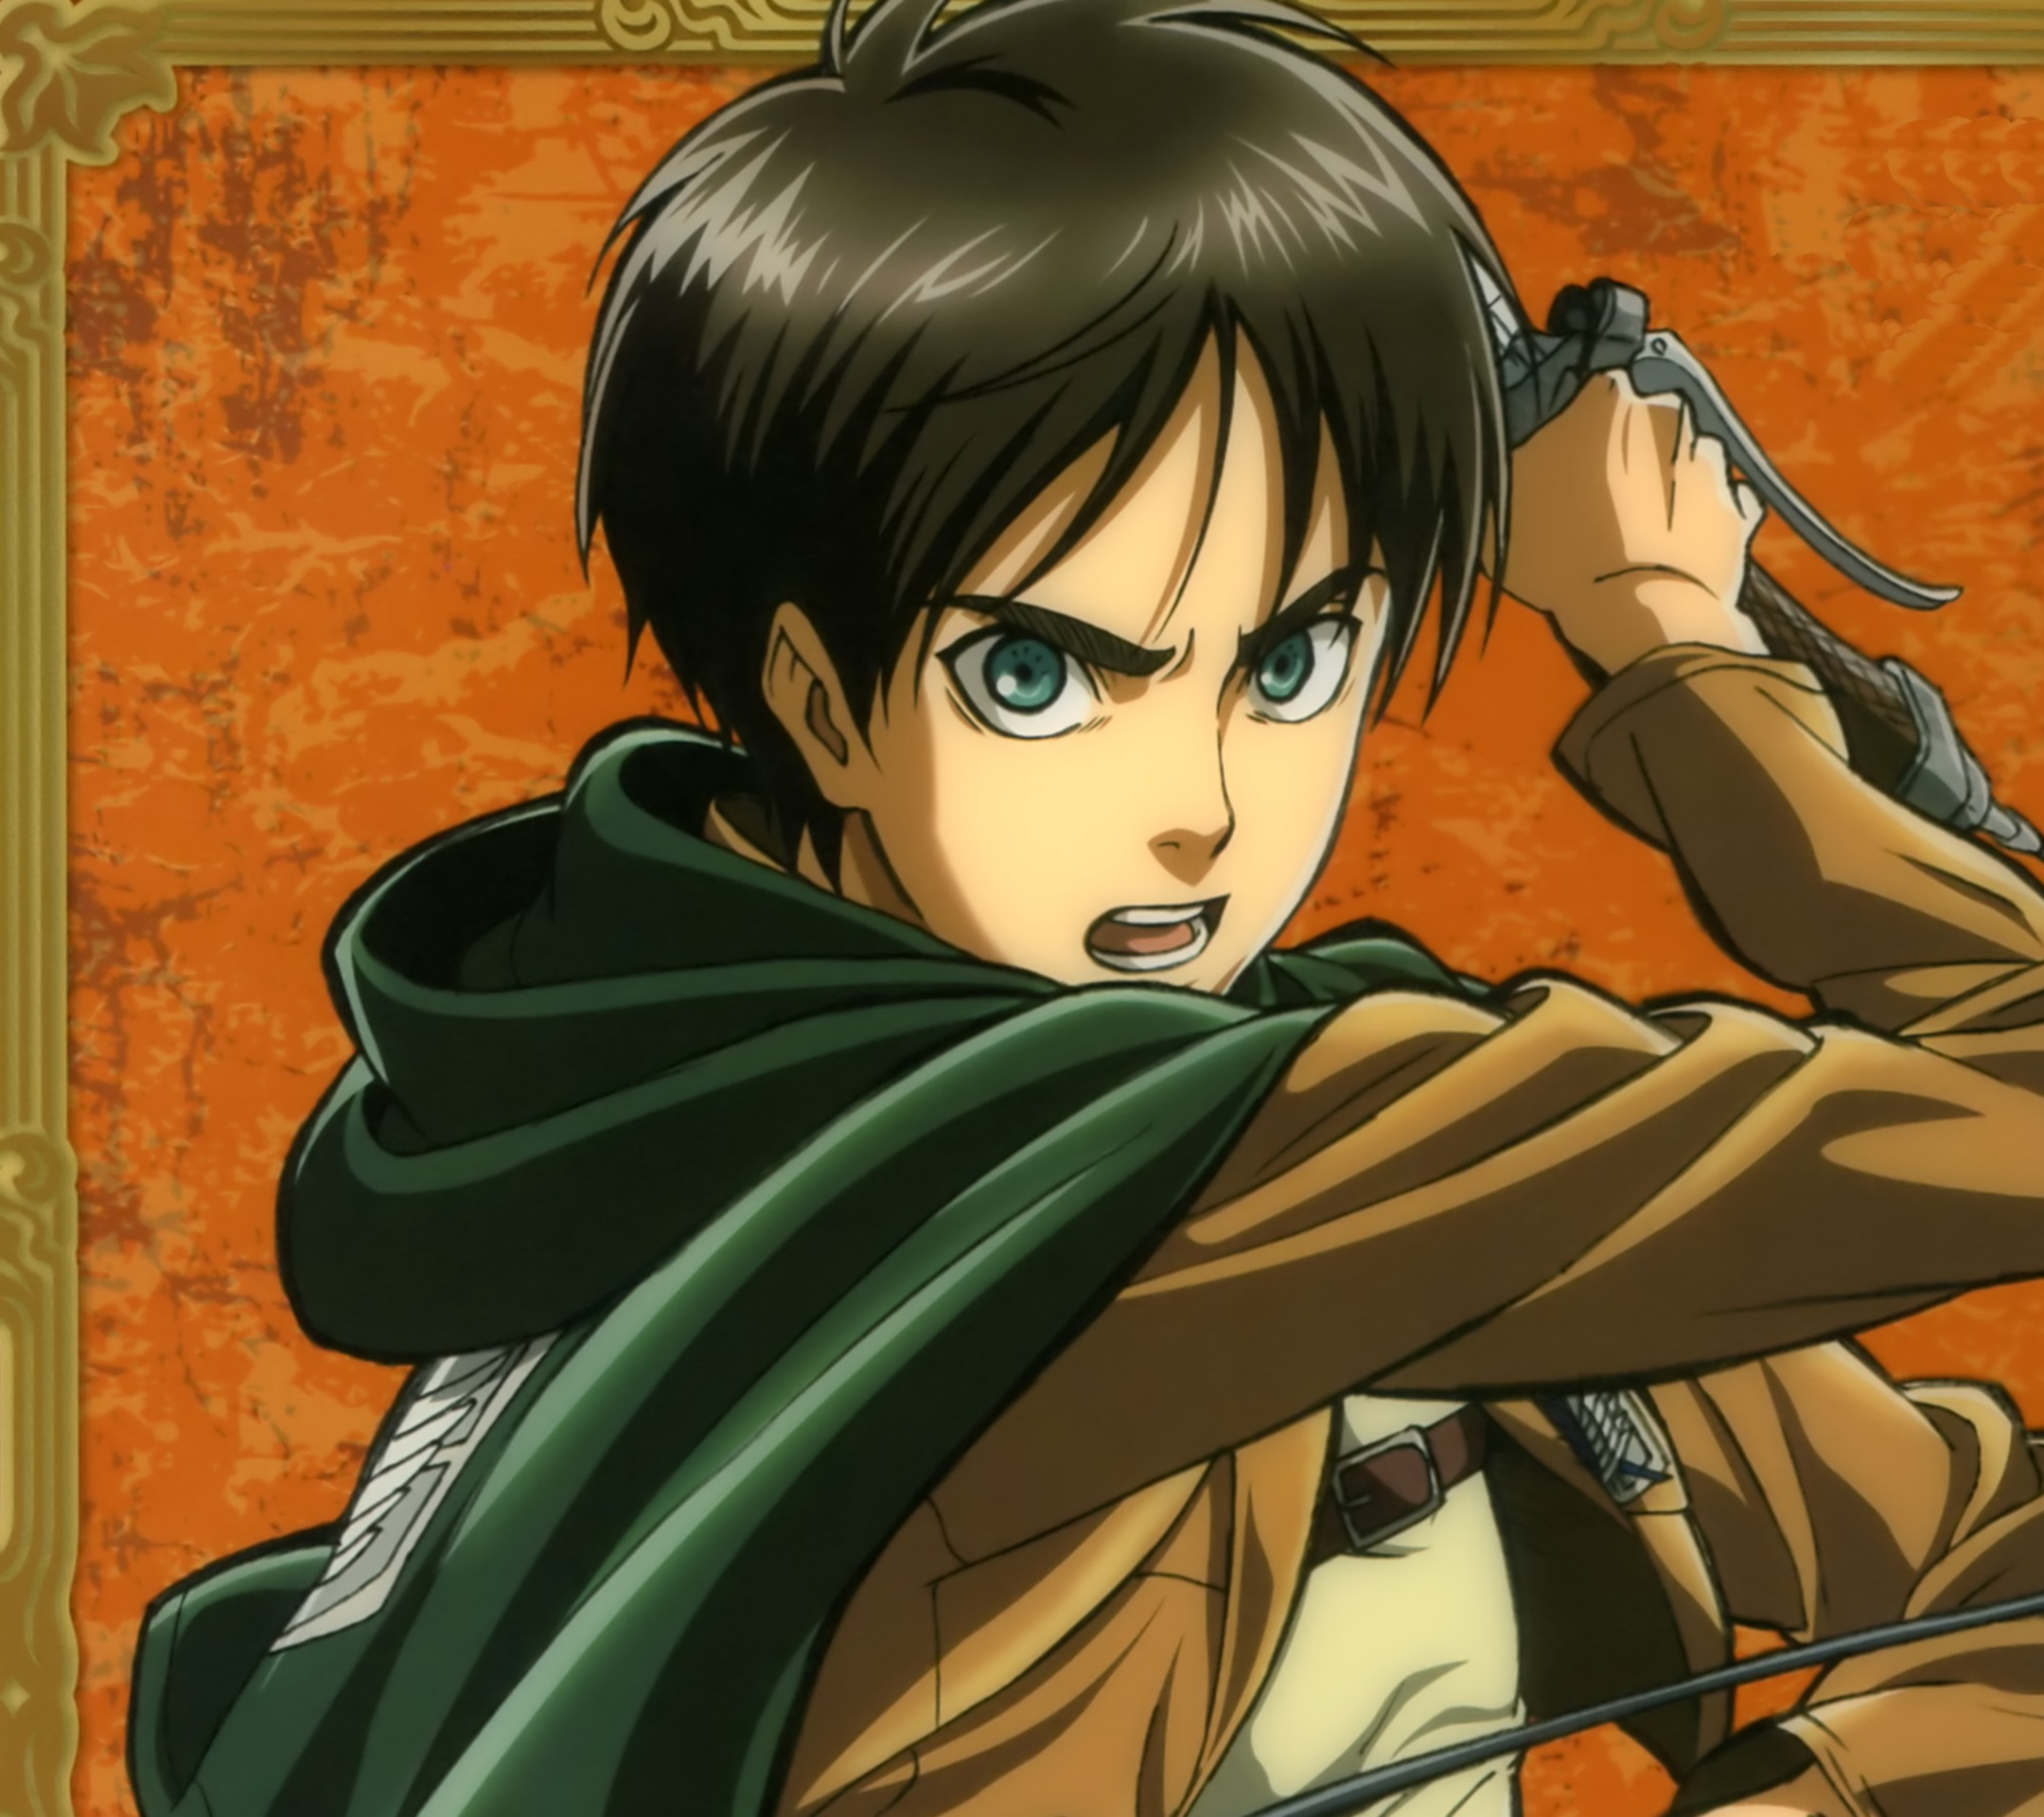 Best 47 Eren Jaeger Wallpaper On Hipwallpaper Eren Crying Wallpaper Eren Wallpaper And Eren And Mikasa Wallpaper